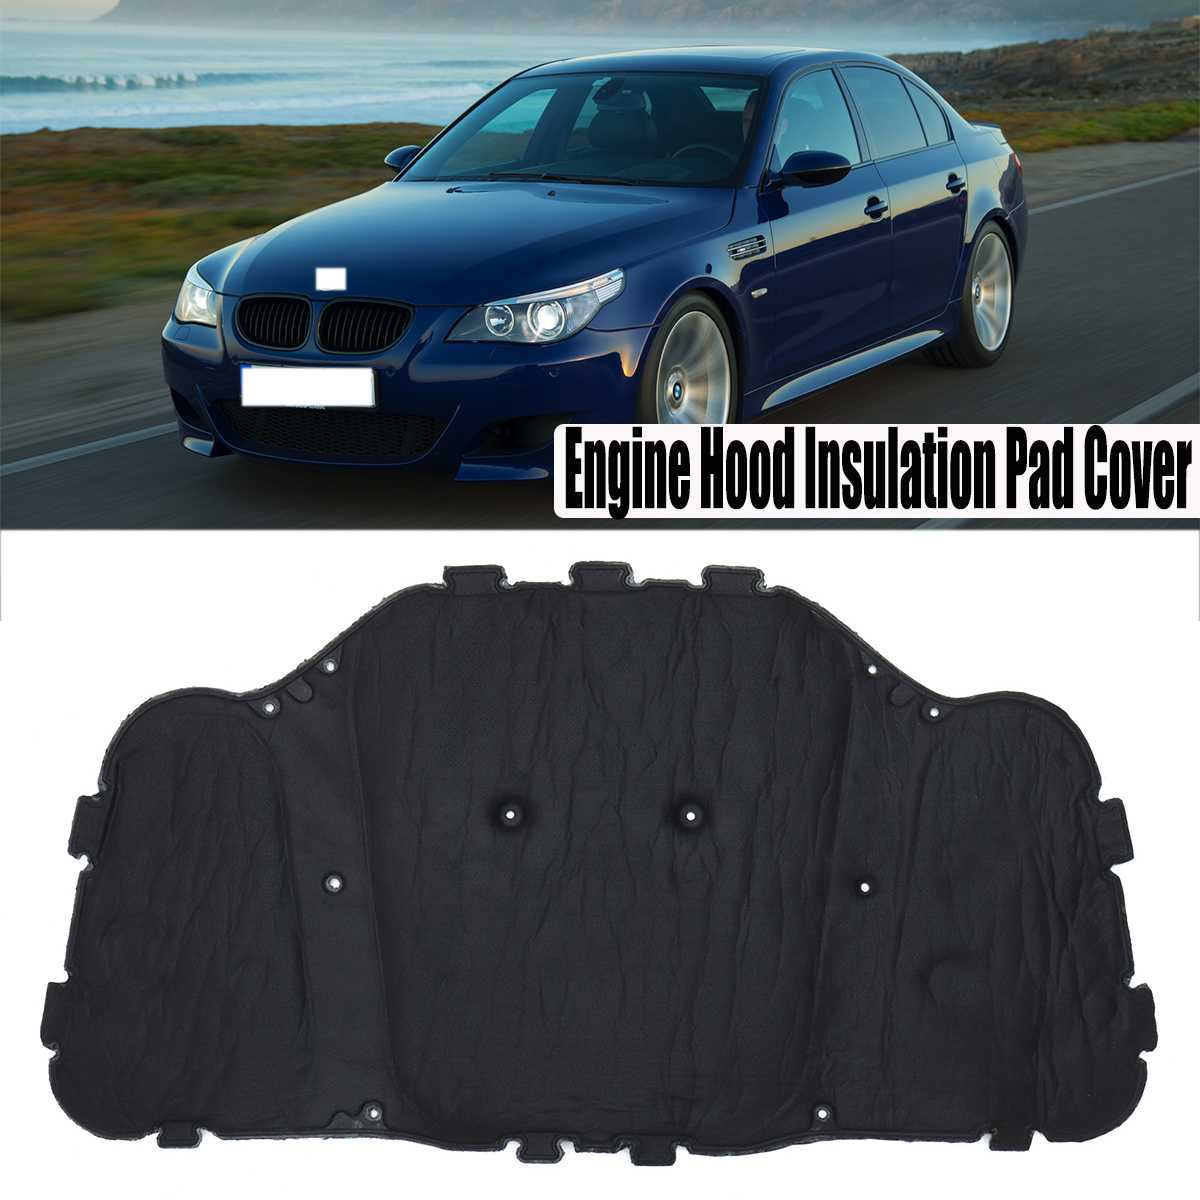 Noise Reduction Insulation Pad Car Stereo Noise Heat Insulation Sound-proof Dampening Pad Mat For BMW E60 E61 525i 528i 530i